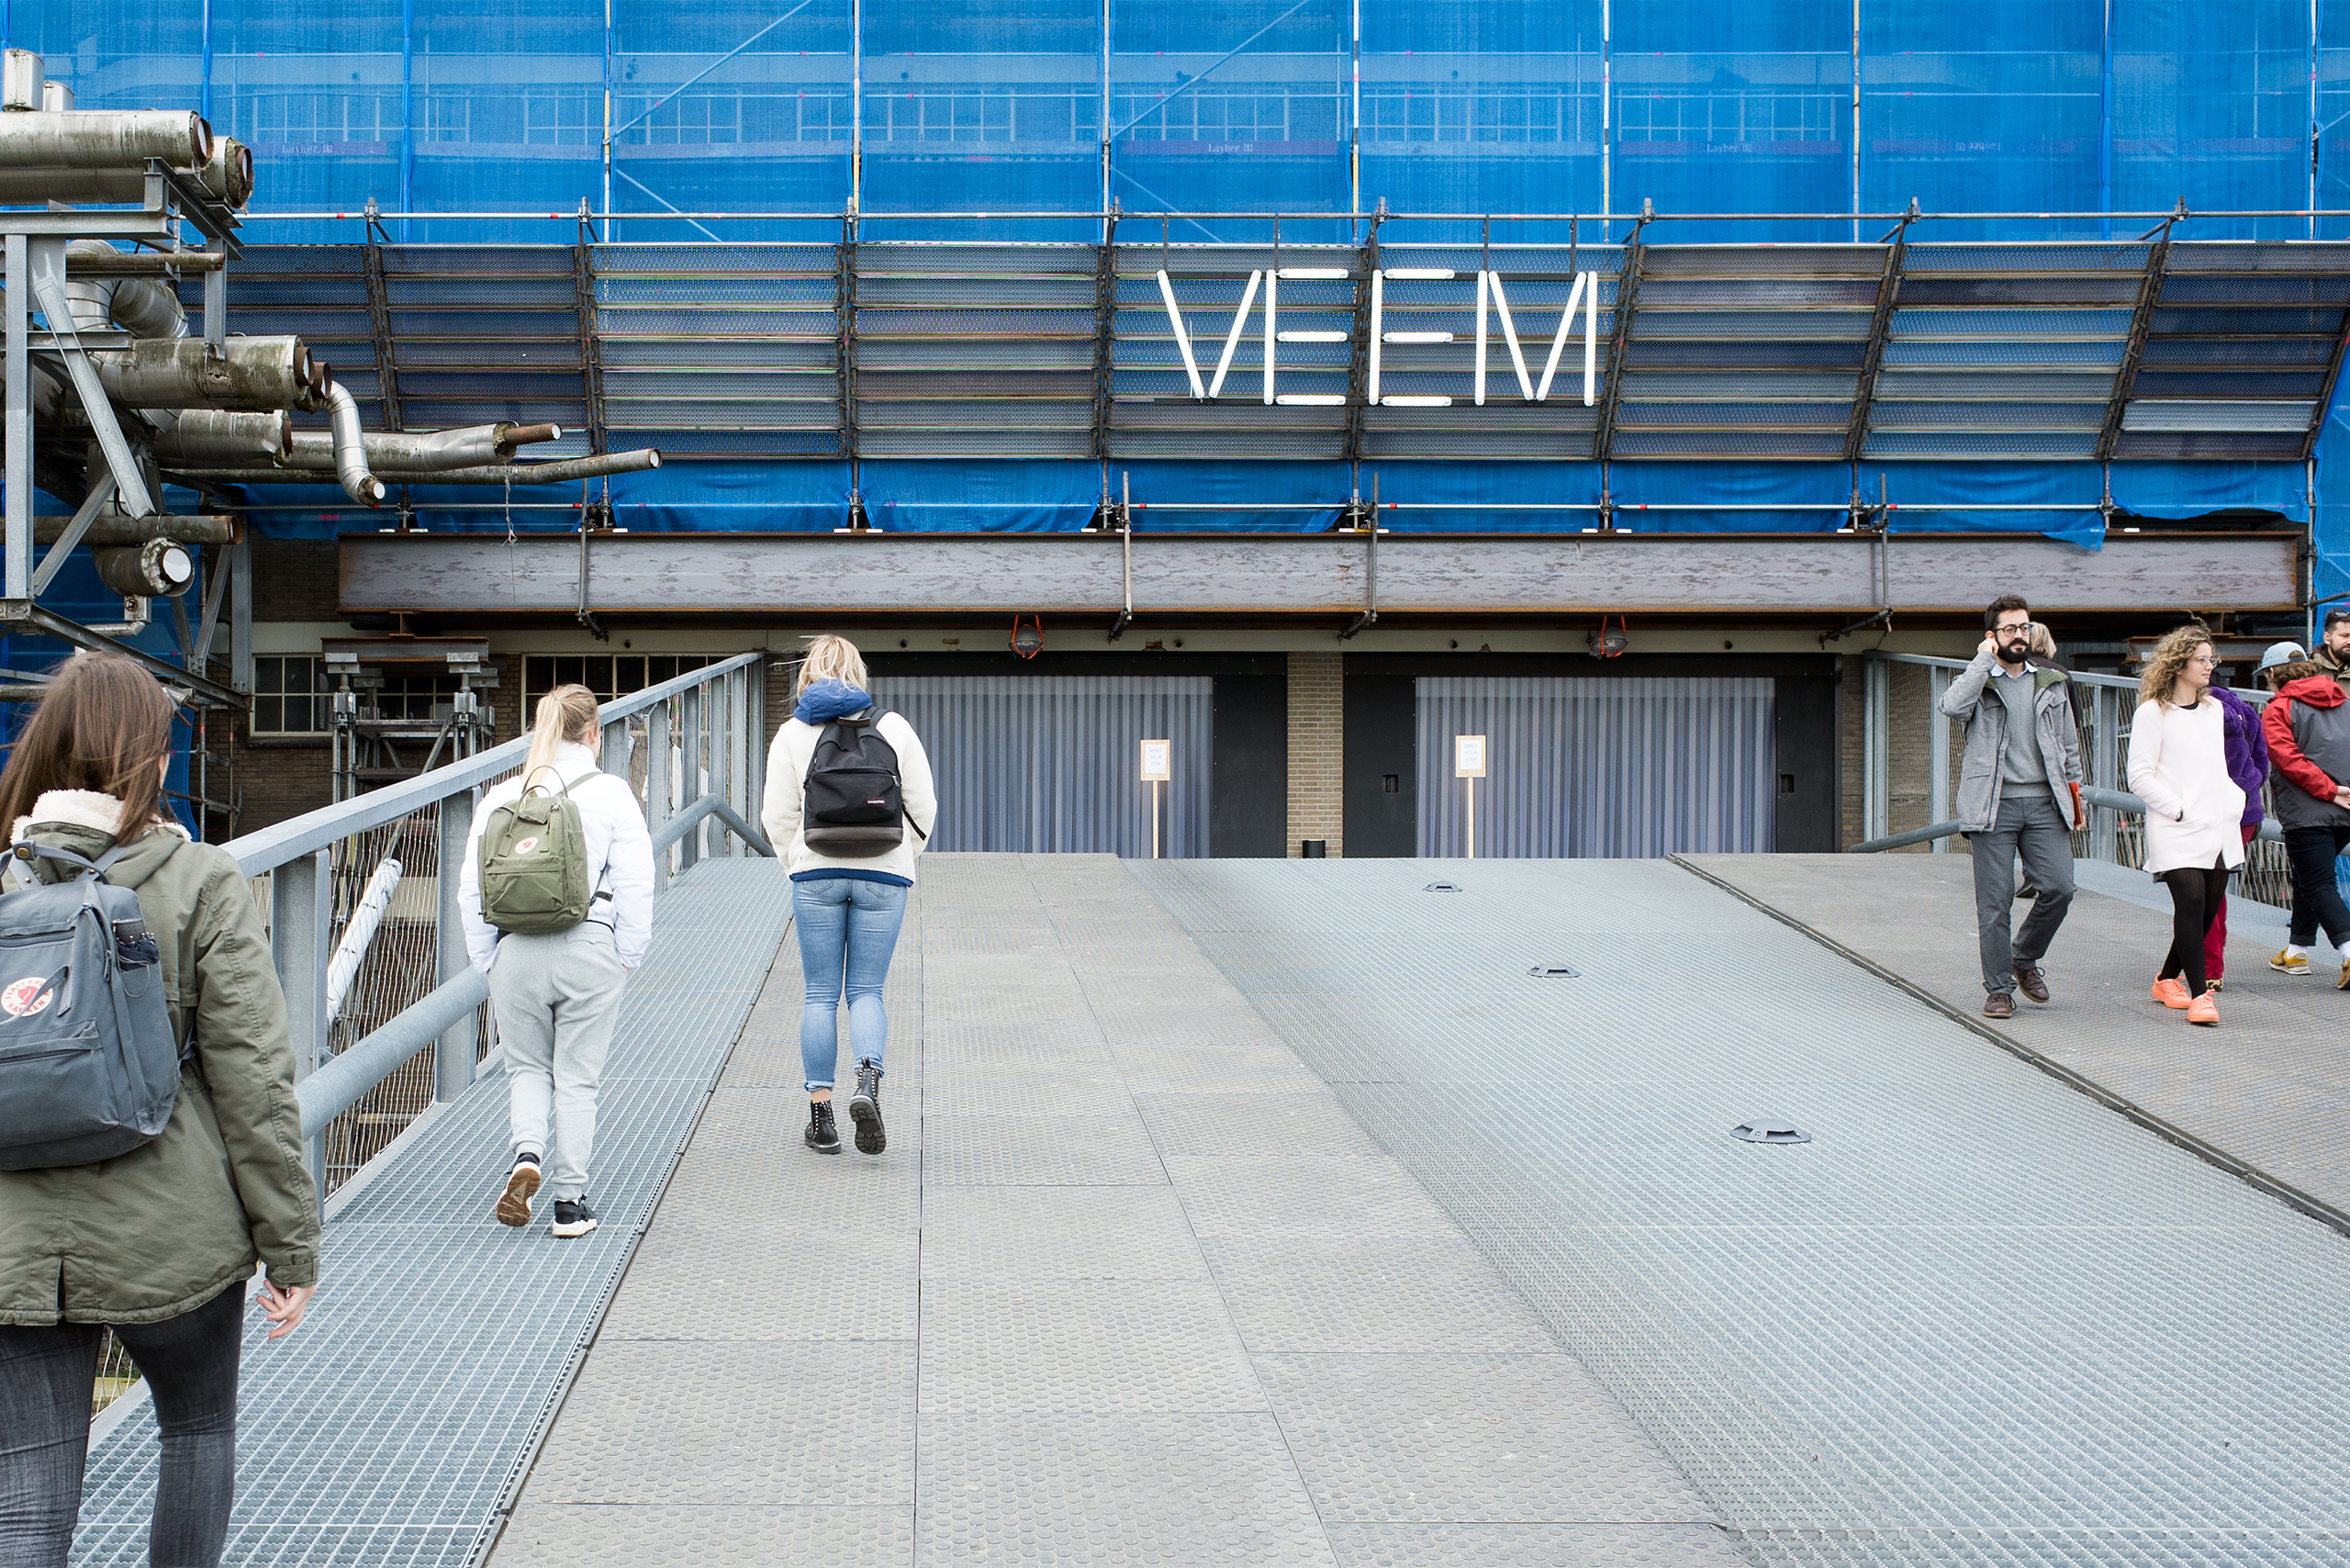 At the VEEM exhibition during the Dutch Design Week in Eindhoven